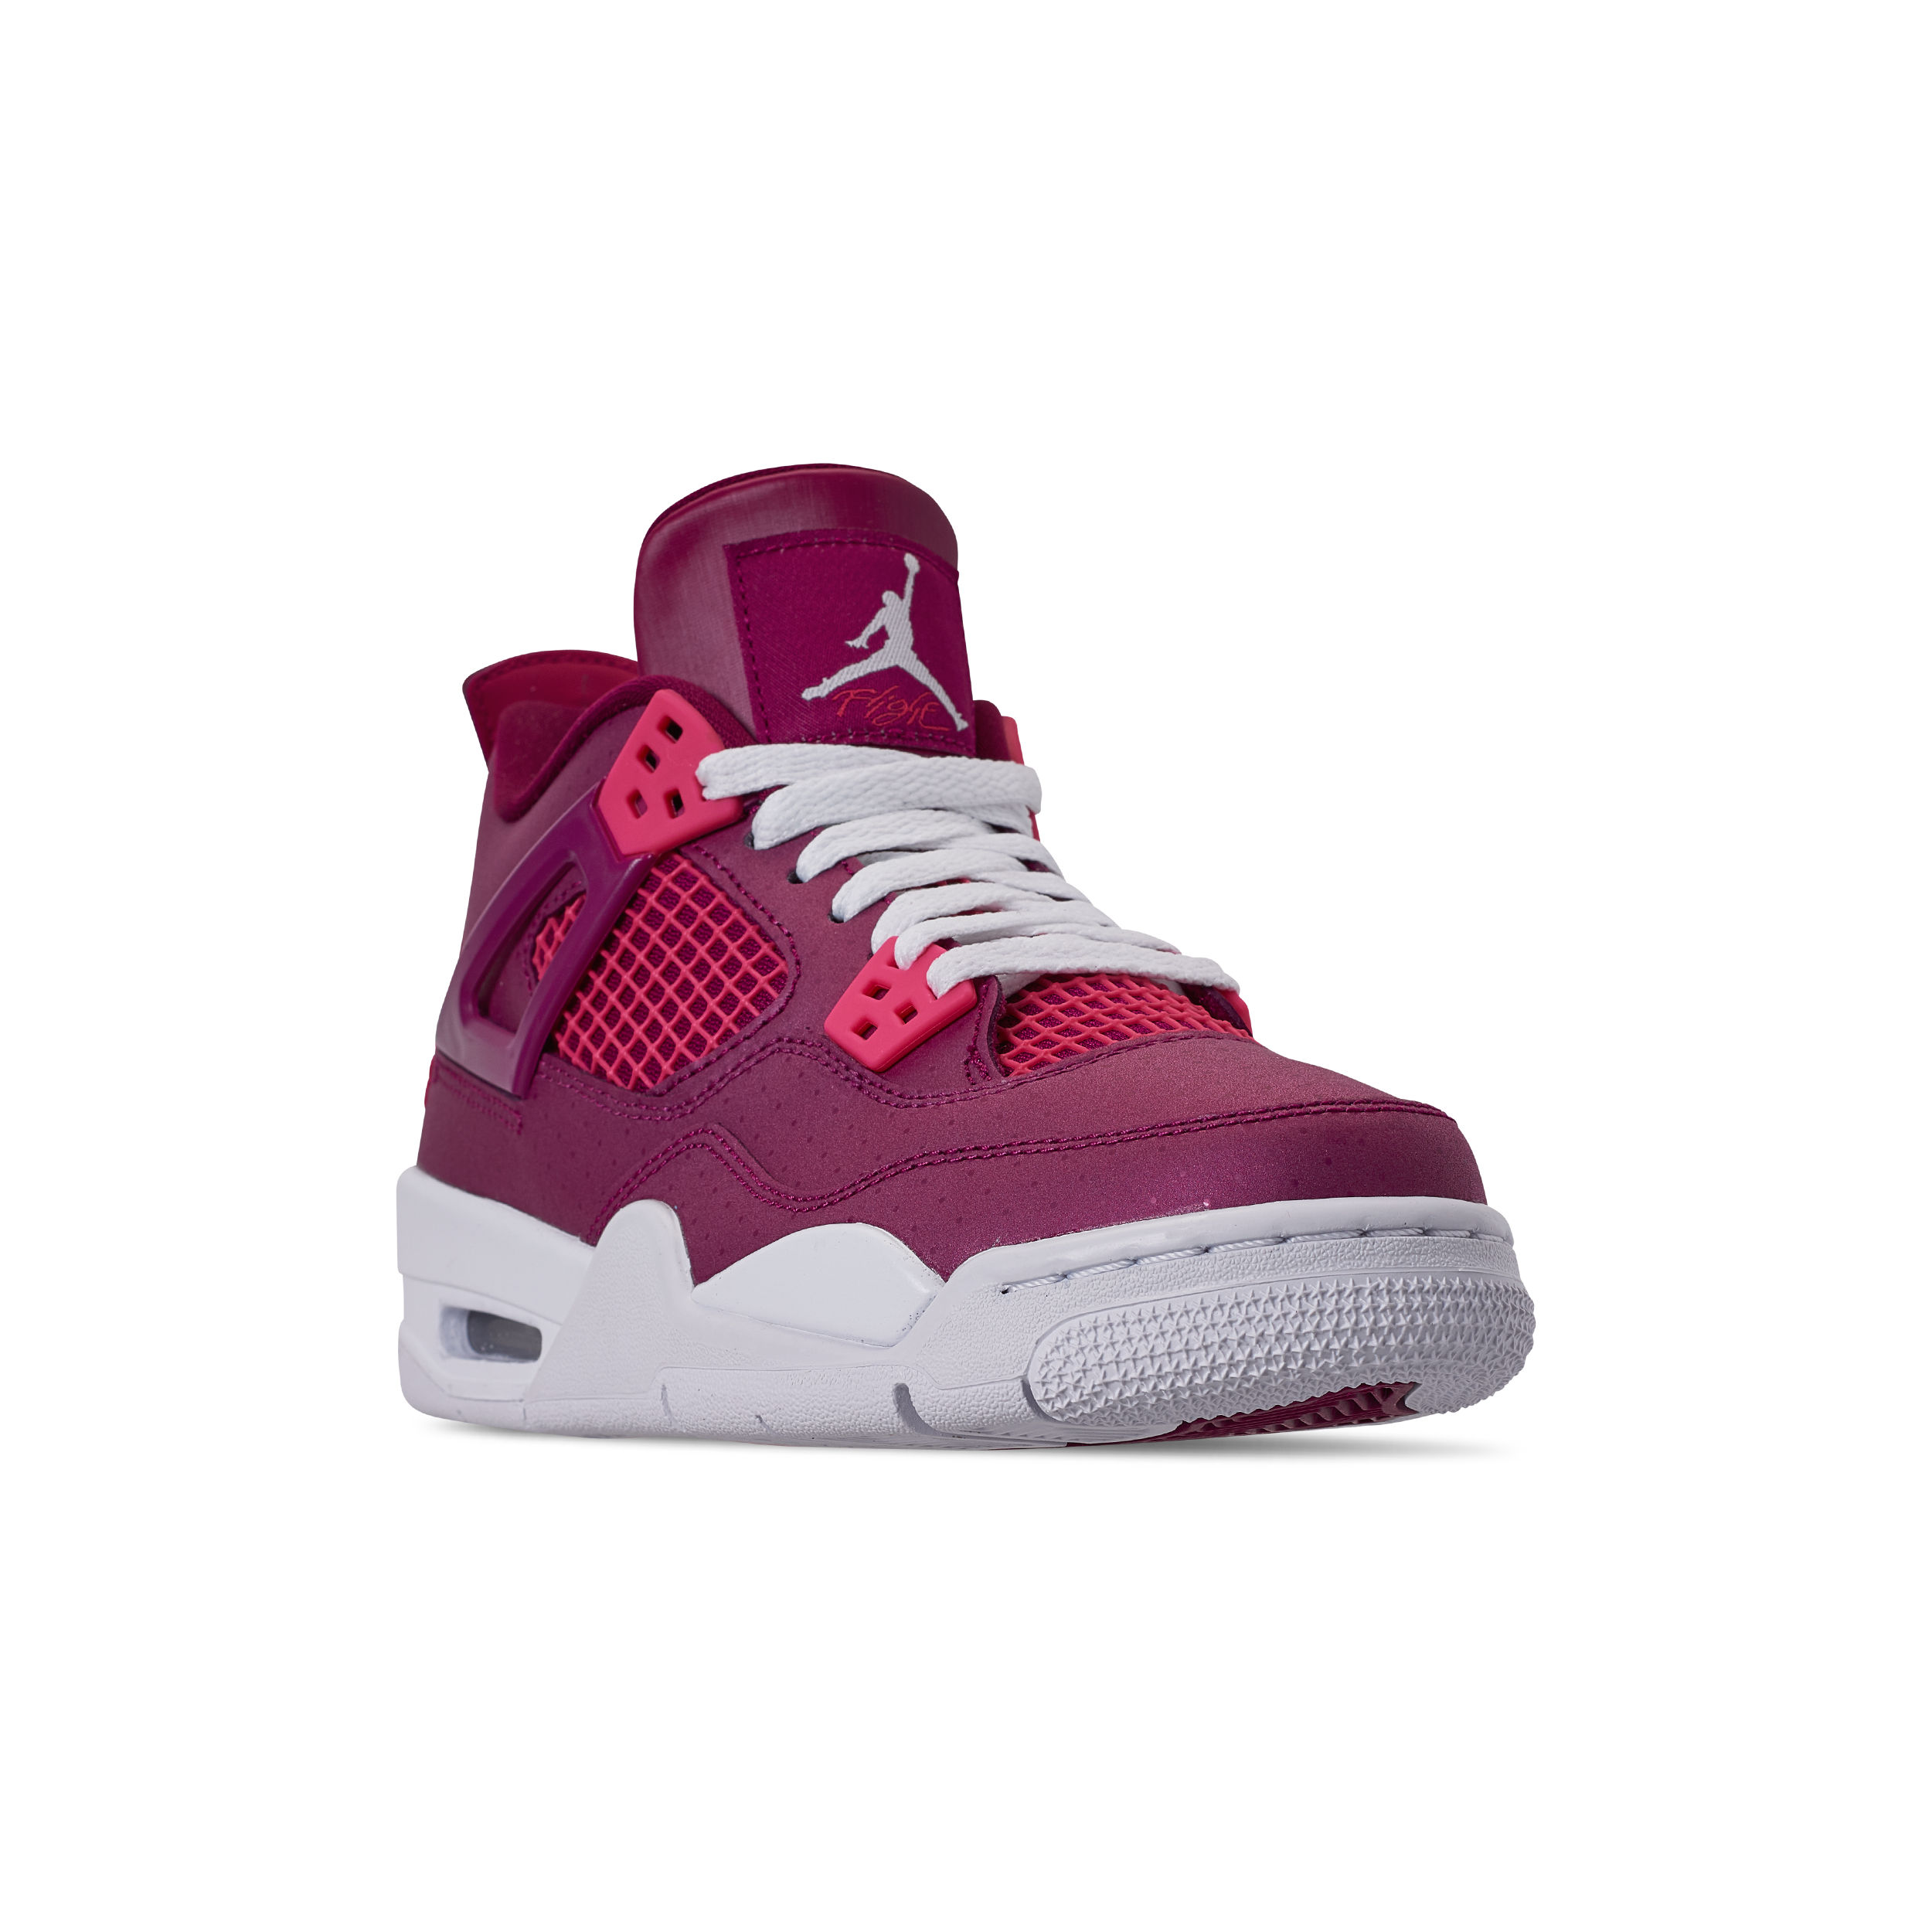 fef2672fdc87 AIR JORDAN RETRO 4 GS TRUE BERRY RUSH PINK-WHITE 1 - WearTesters